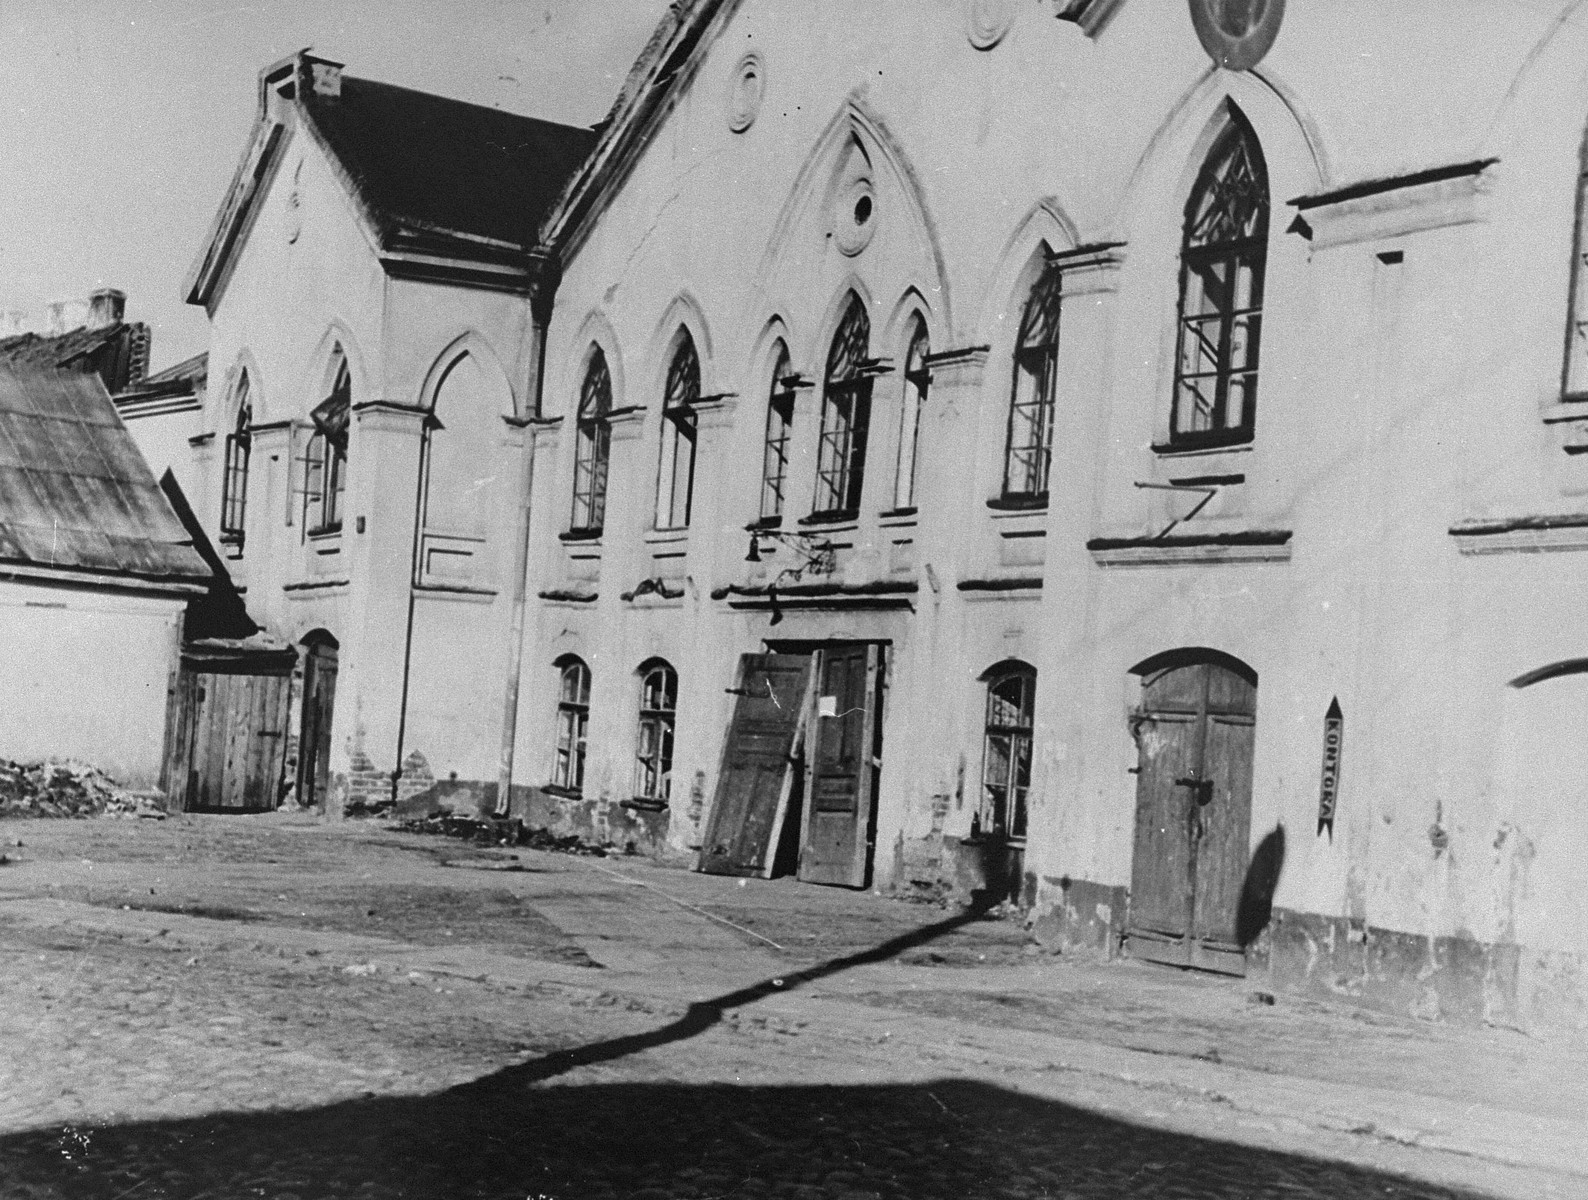 View of the vandalized New Beit Midrash (house of study) in Kovno.